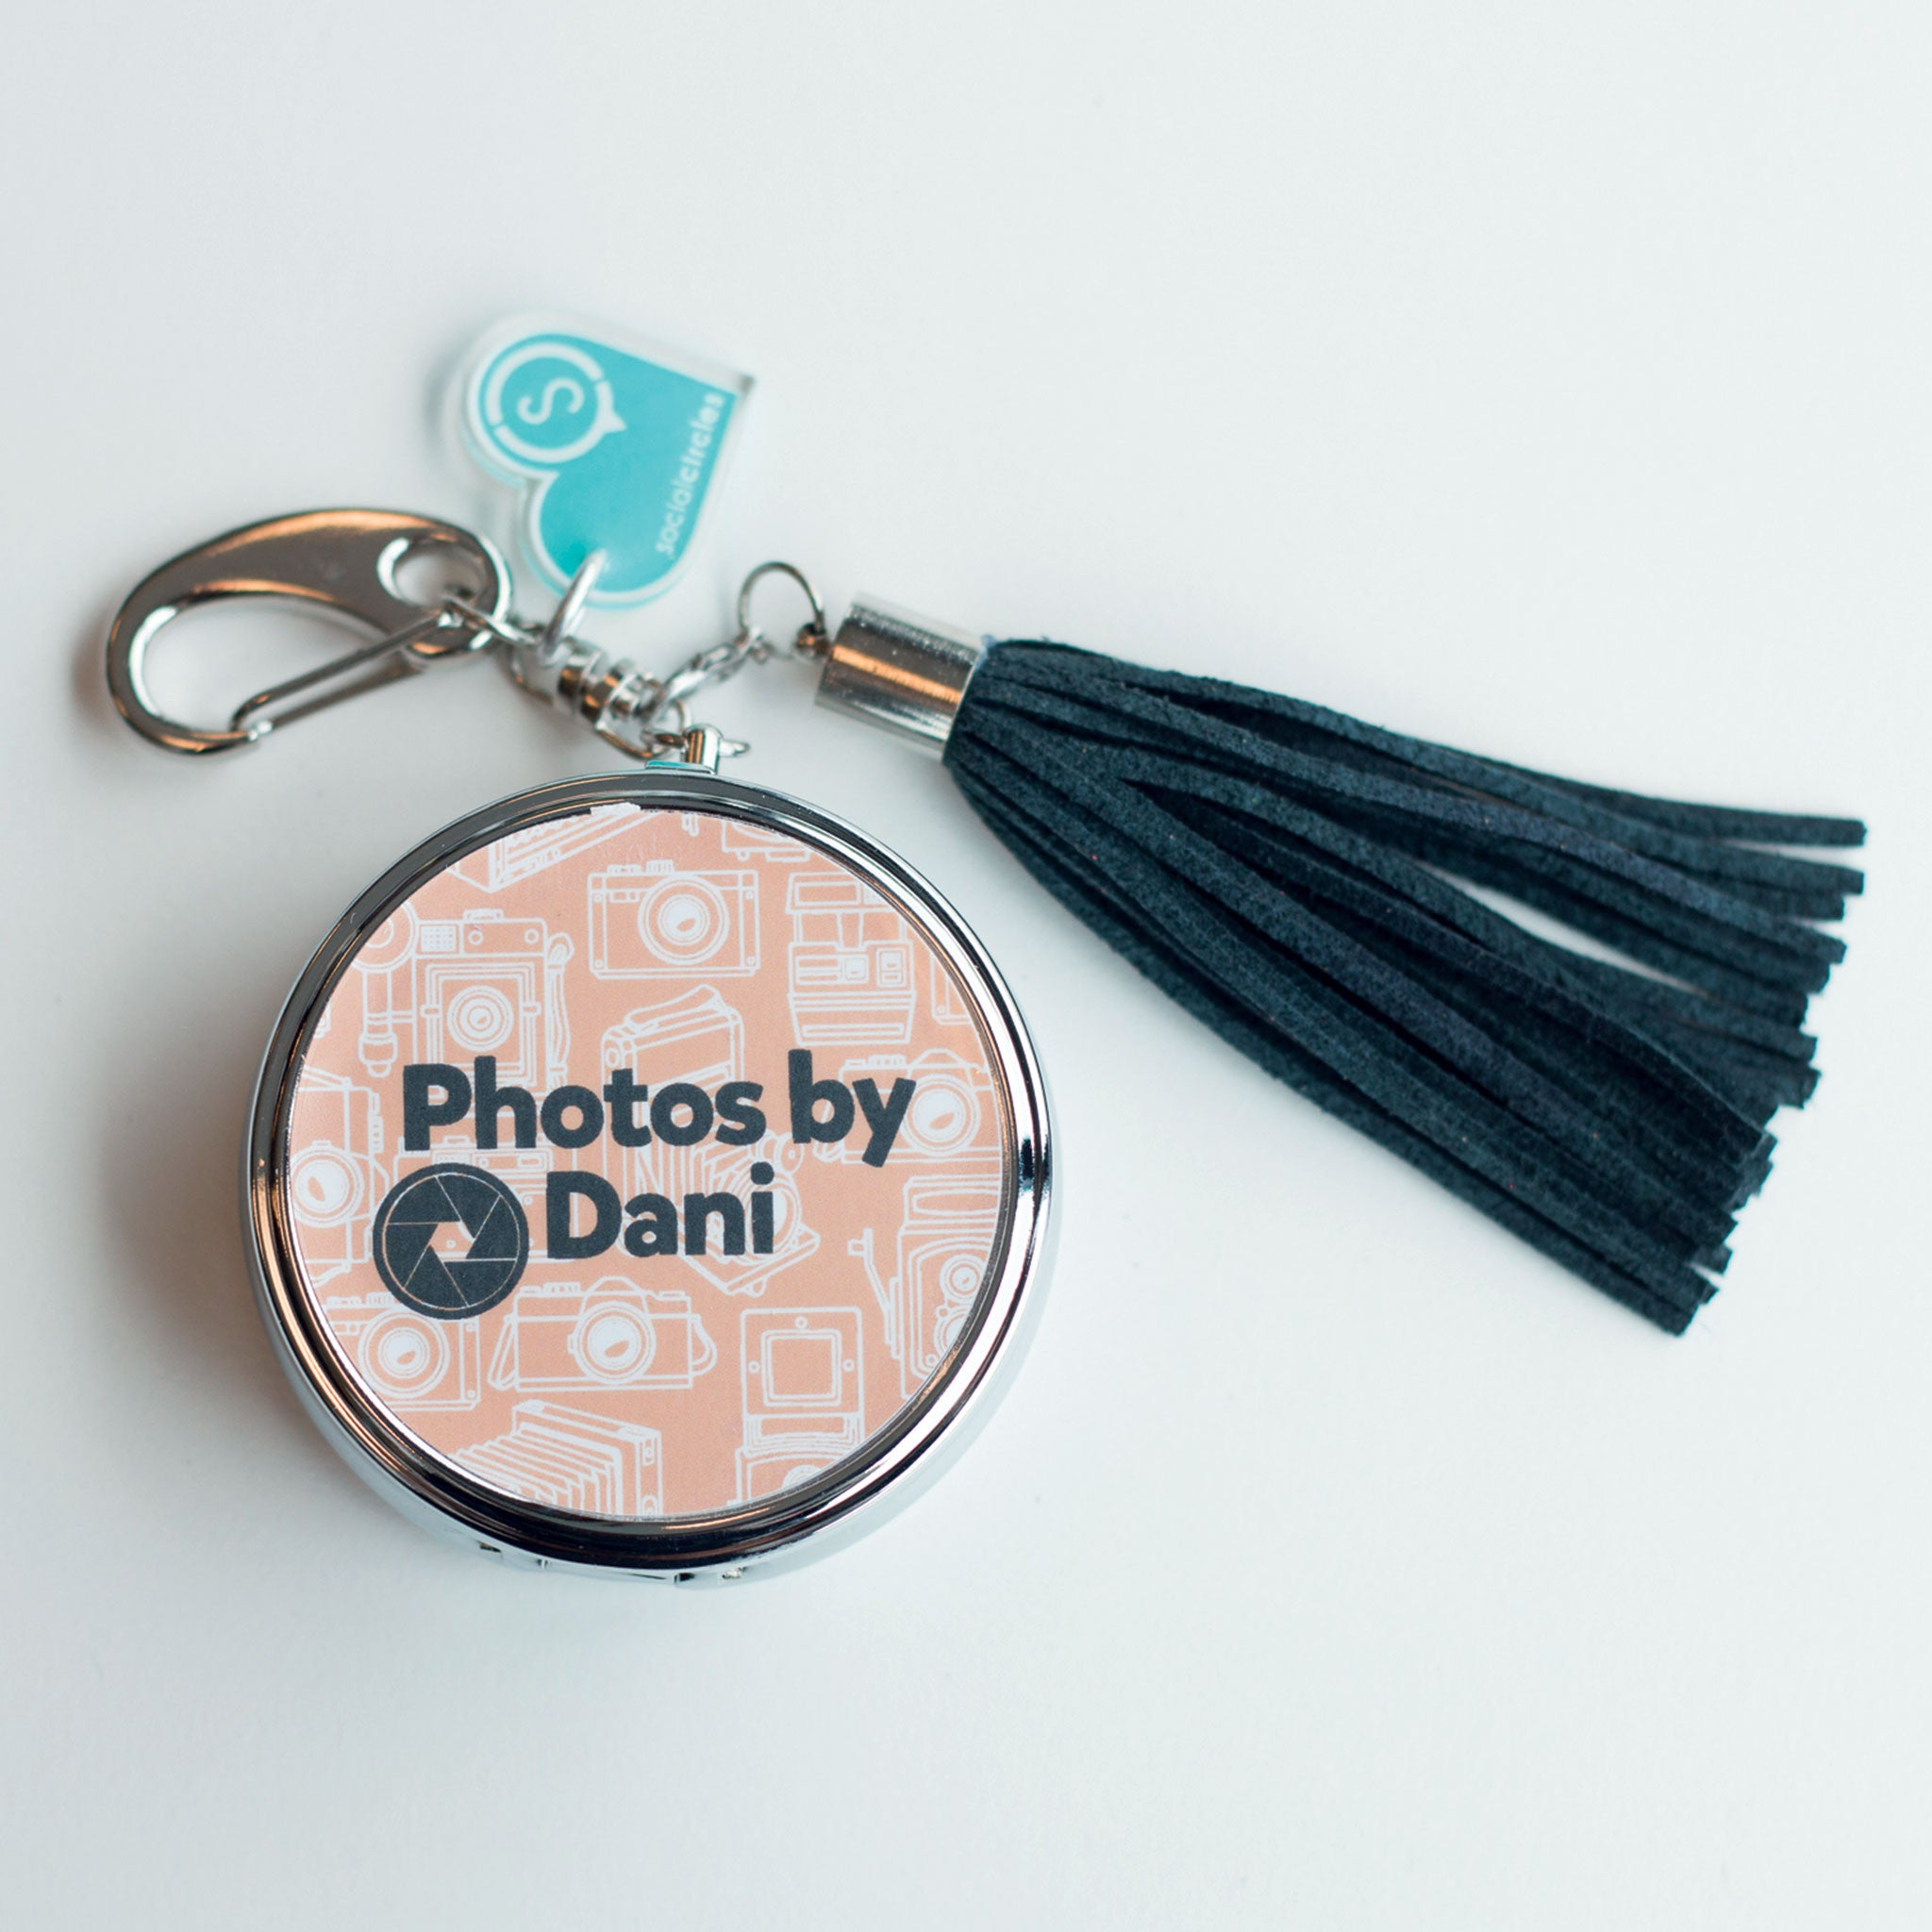 Dani - Business Cards